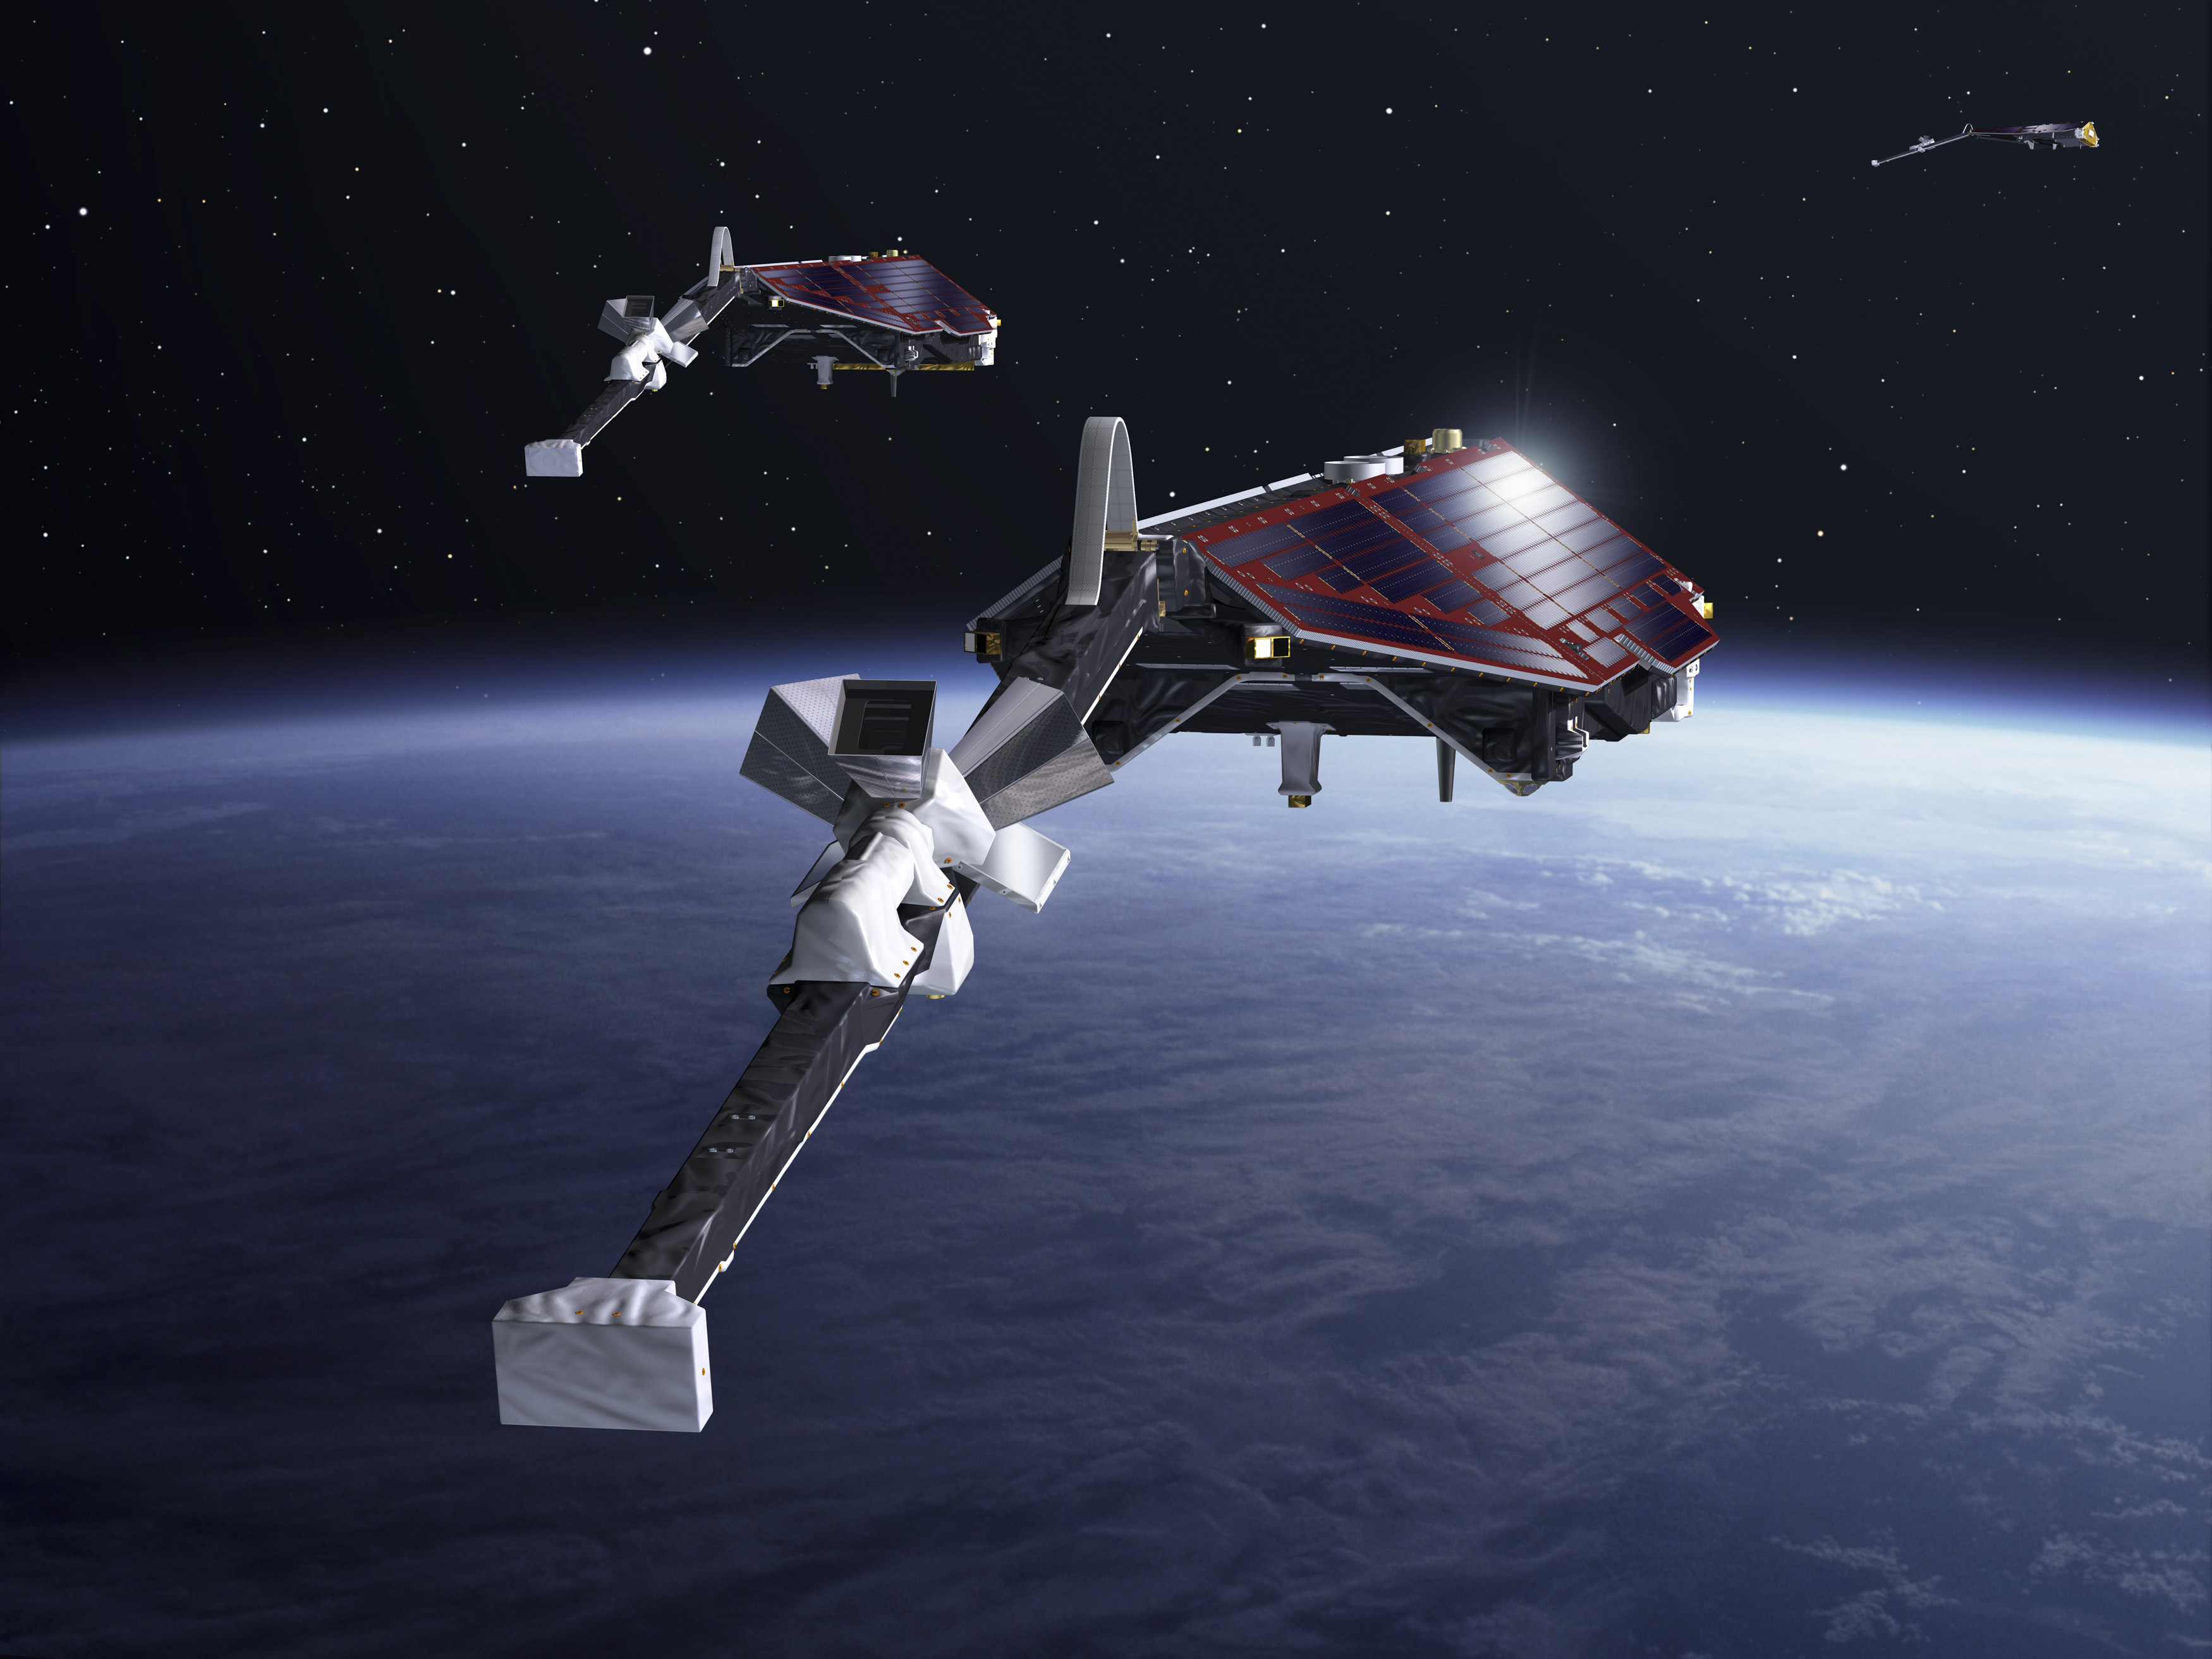 The three identical satellites were launched together on one rocket in 2013. Two satellites orbit almost side-by-side at the same altitude – initially at about 460 km, descending to around 300 km over the lifetime of the mission. The third satellite is in a higher orbit, at 530 km, and at a slightly different inclination. Credit: ESA–P. Carril, 2013